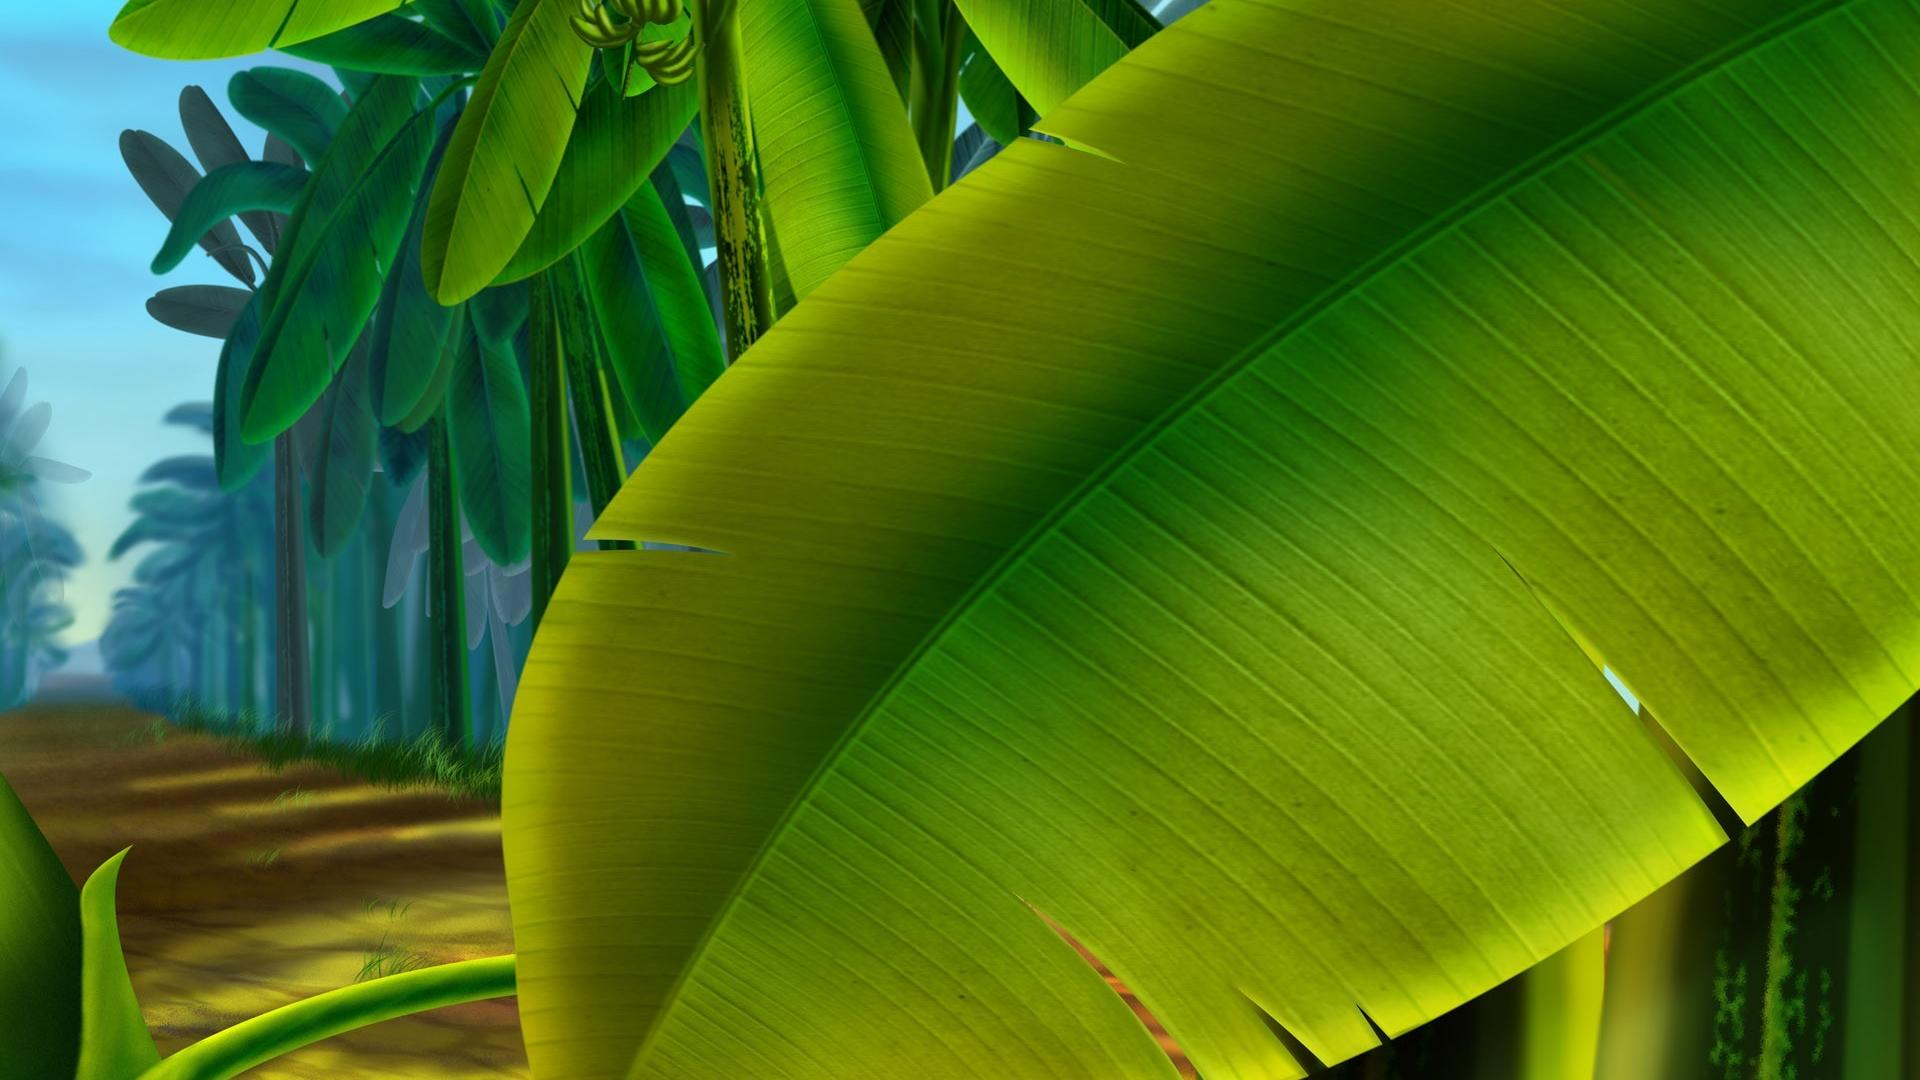 Multicolor leaves plants bananas palm fruit trees wallpaper 9768 1920x1080